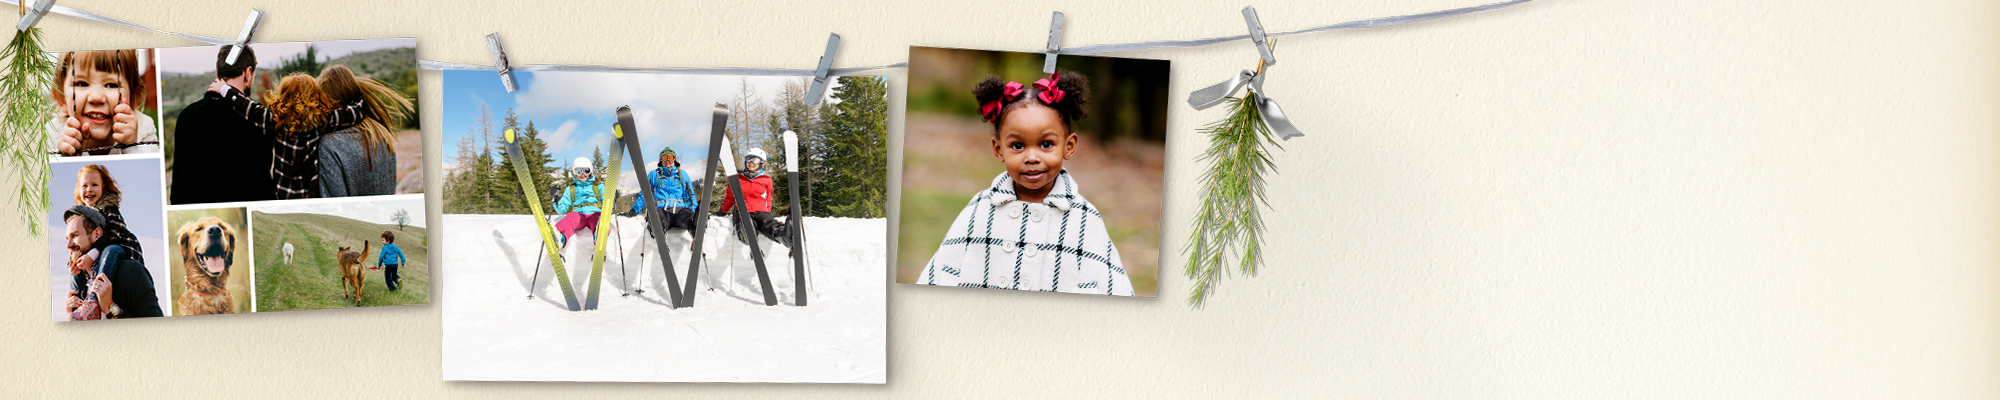 Prints : From the first day of the season to the last, capture all your holiday fun with prints.